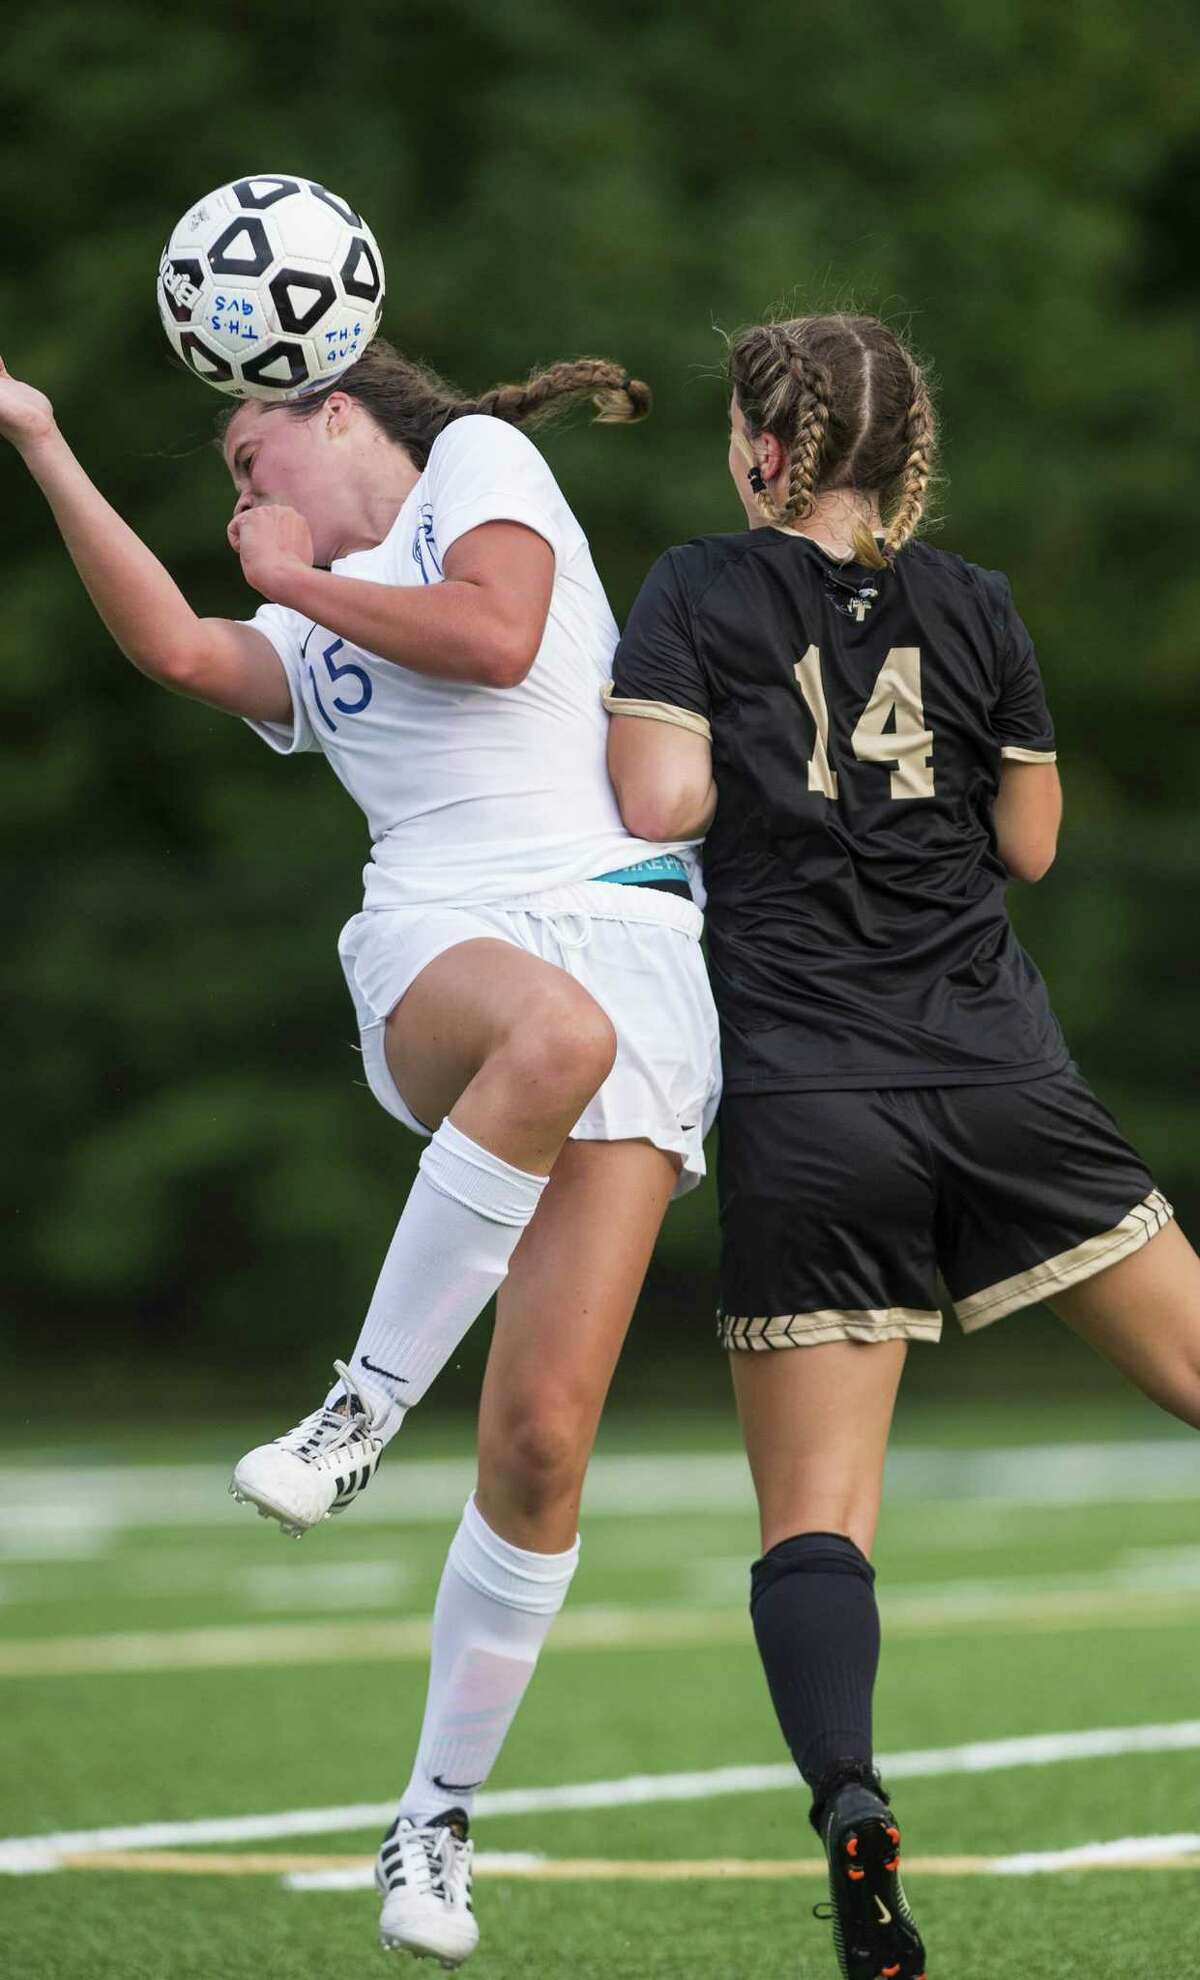 Darien High School?'s Shea Dolce heads the ball during a girls soccer match against Trumbull High School played at Trumbull High School, Trumbull, CT. Tuesday, September 11, 2018.